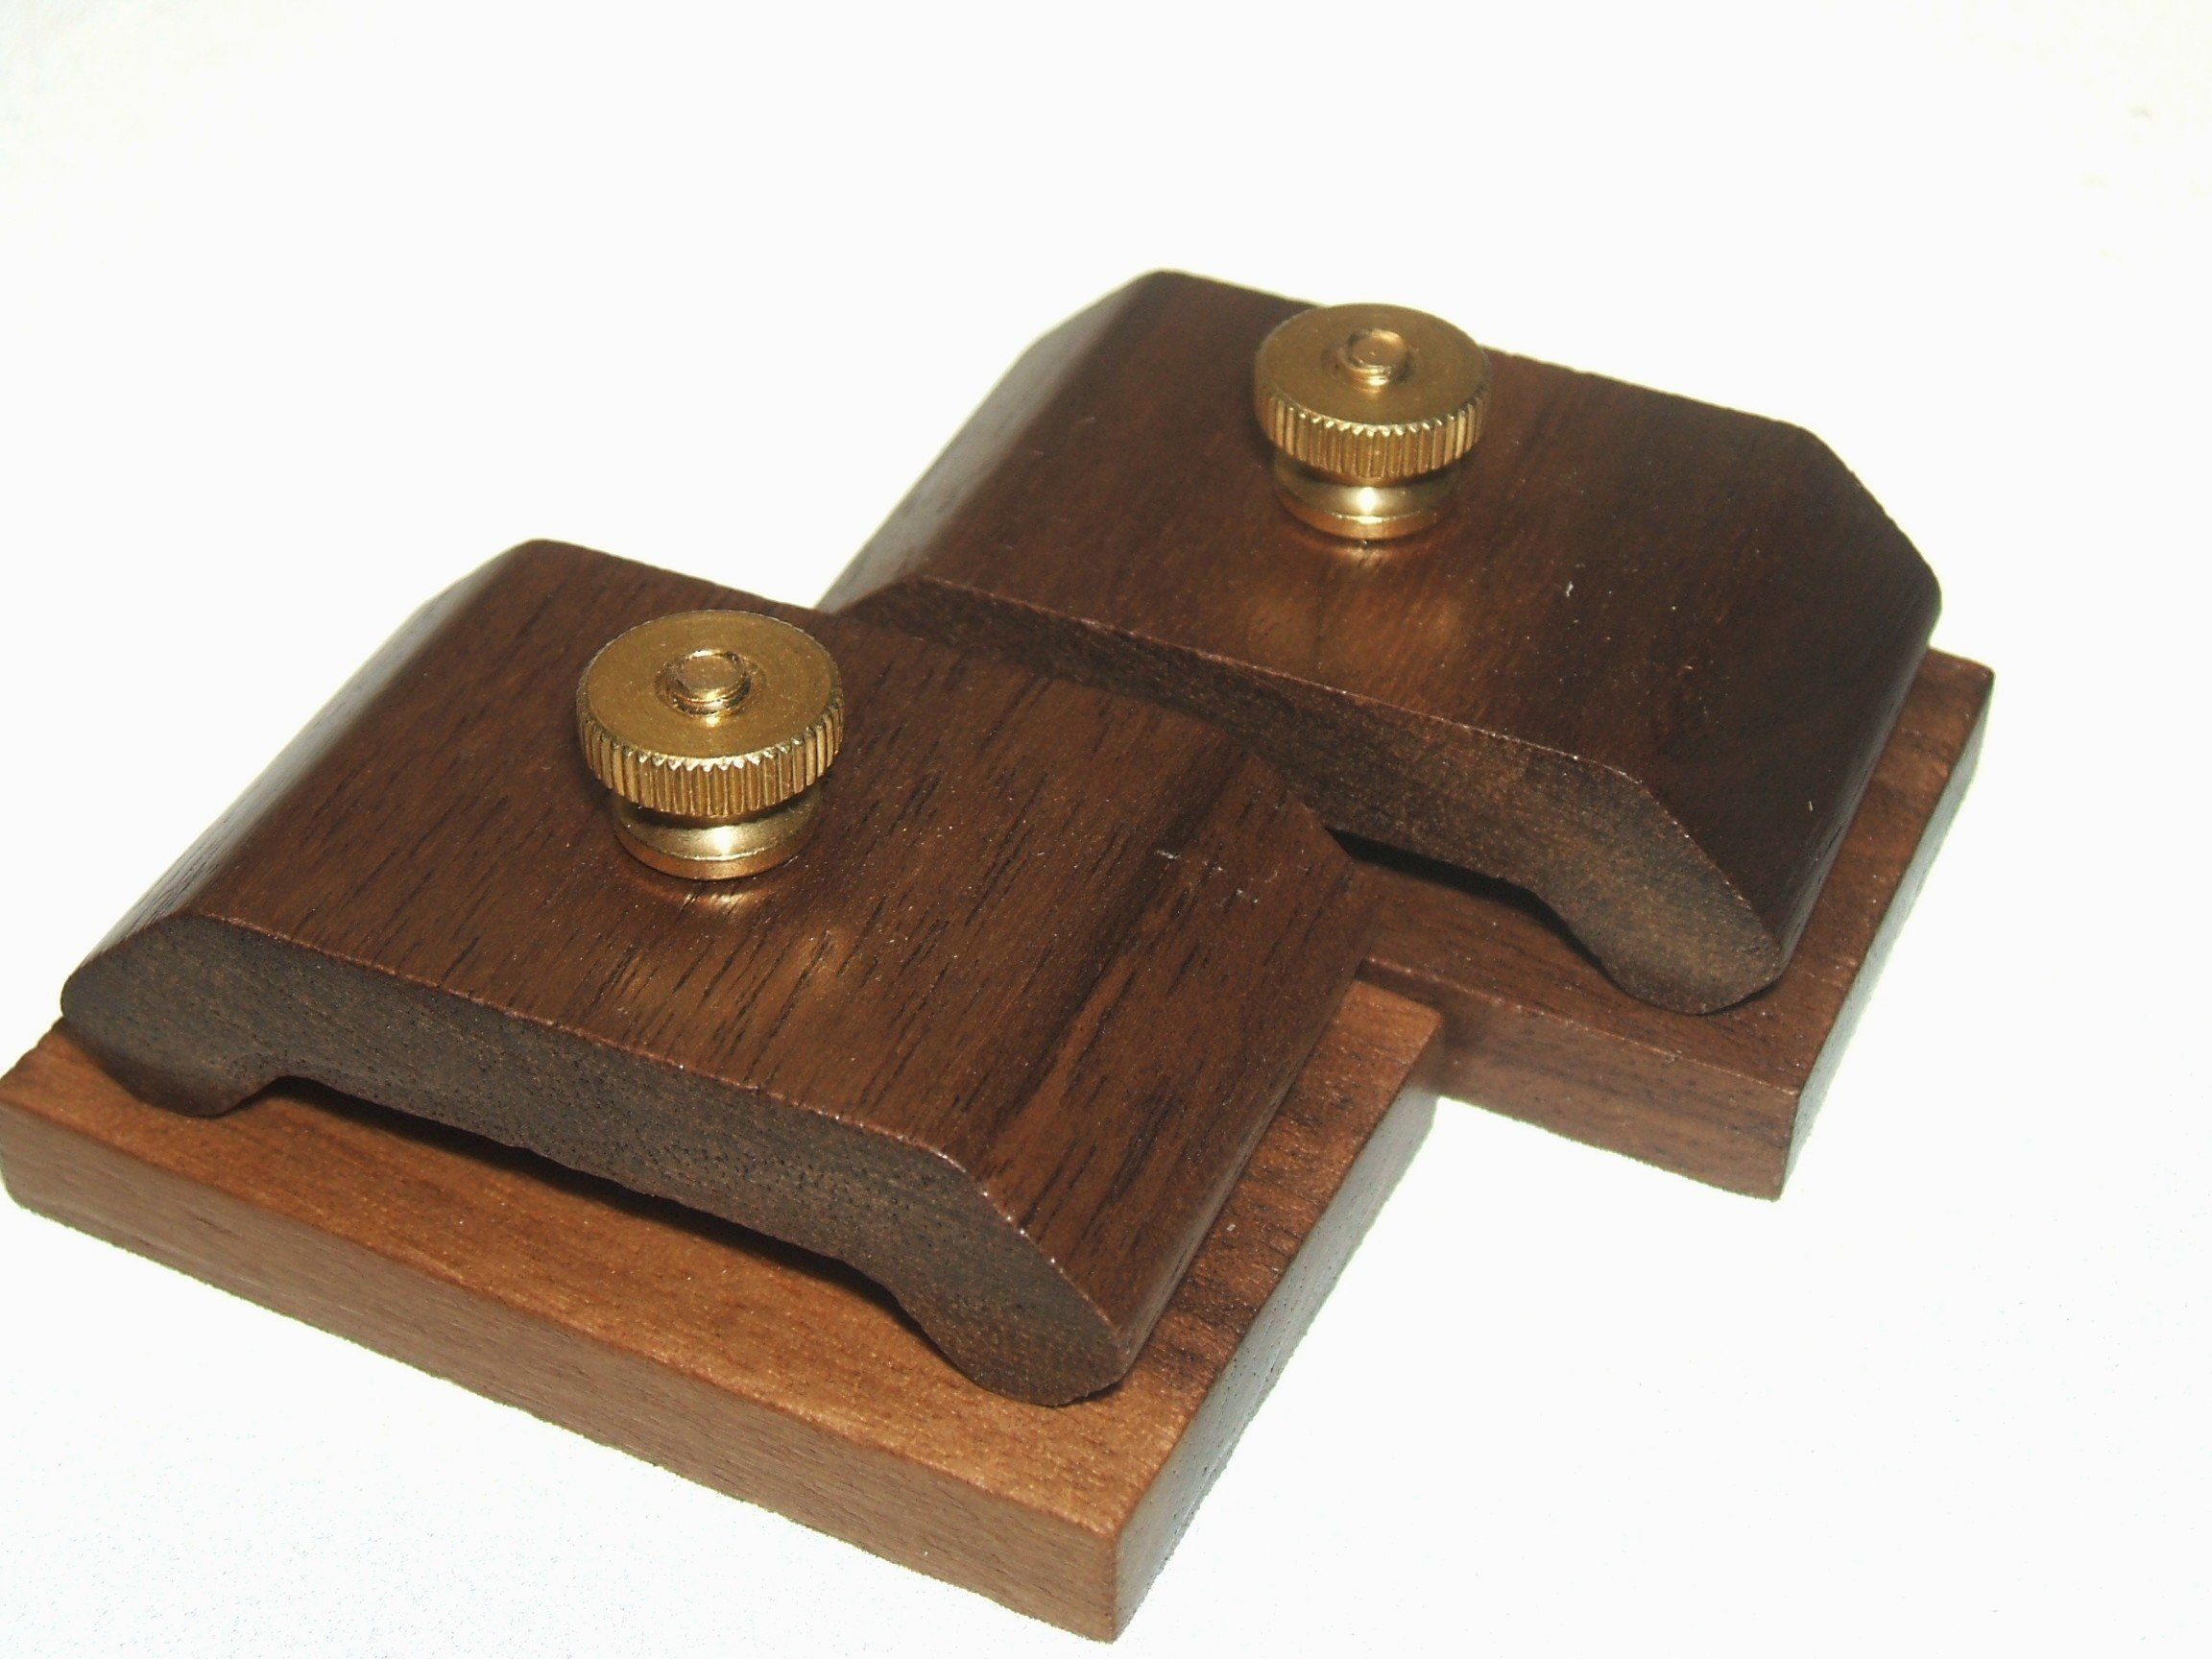 1 Pair Mini Walnut Hang-Ups Quilt Clamps Clips - Small by Walnut Hang-Ups (Image #1)